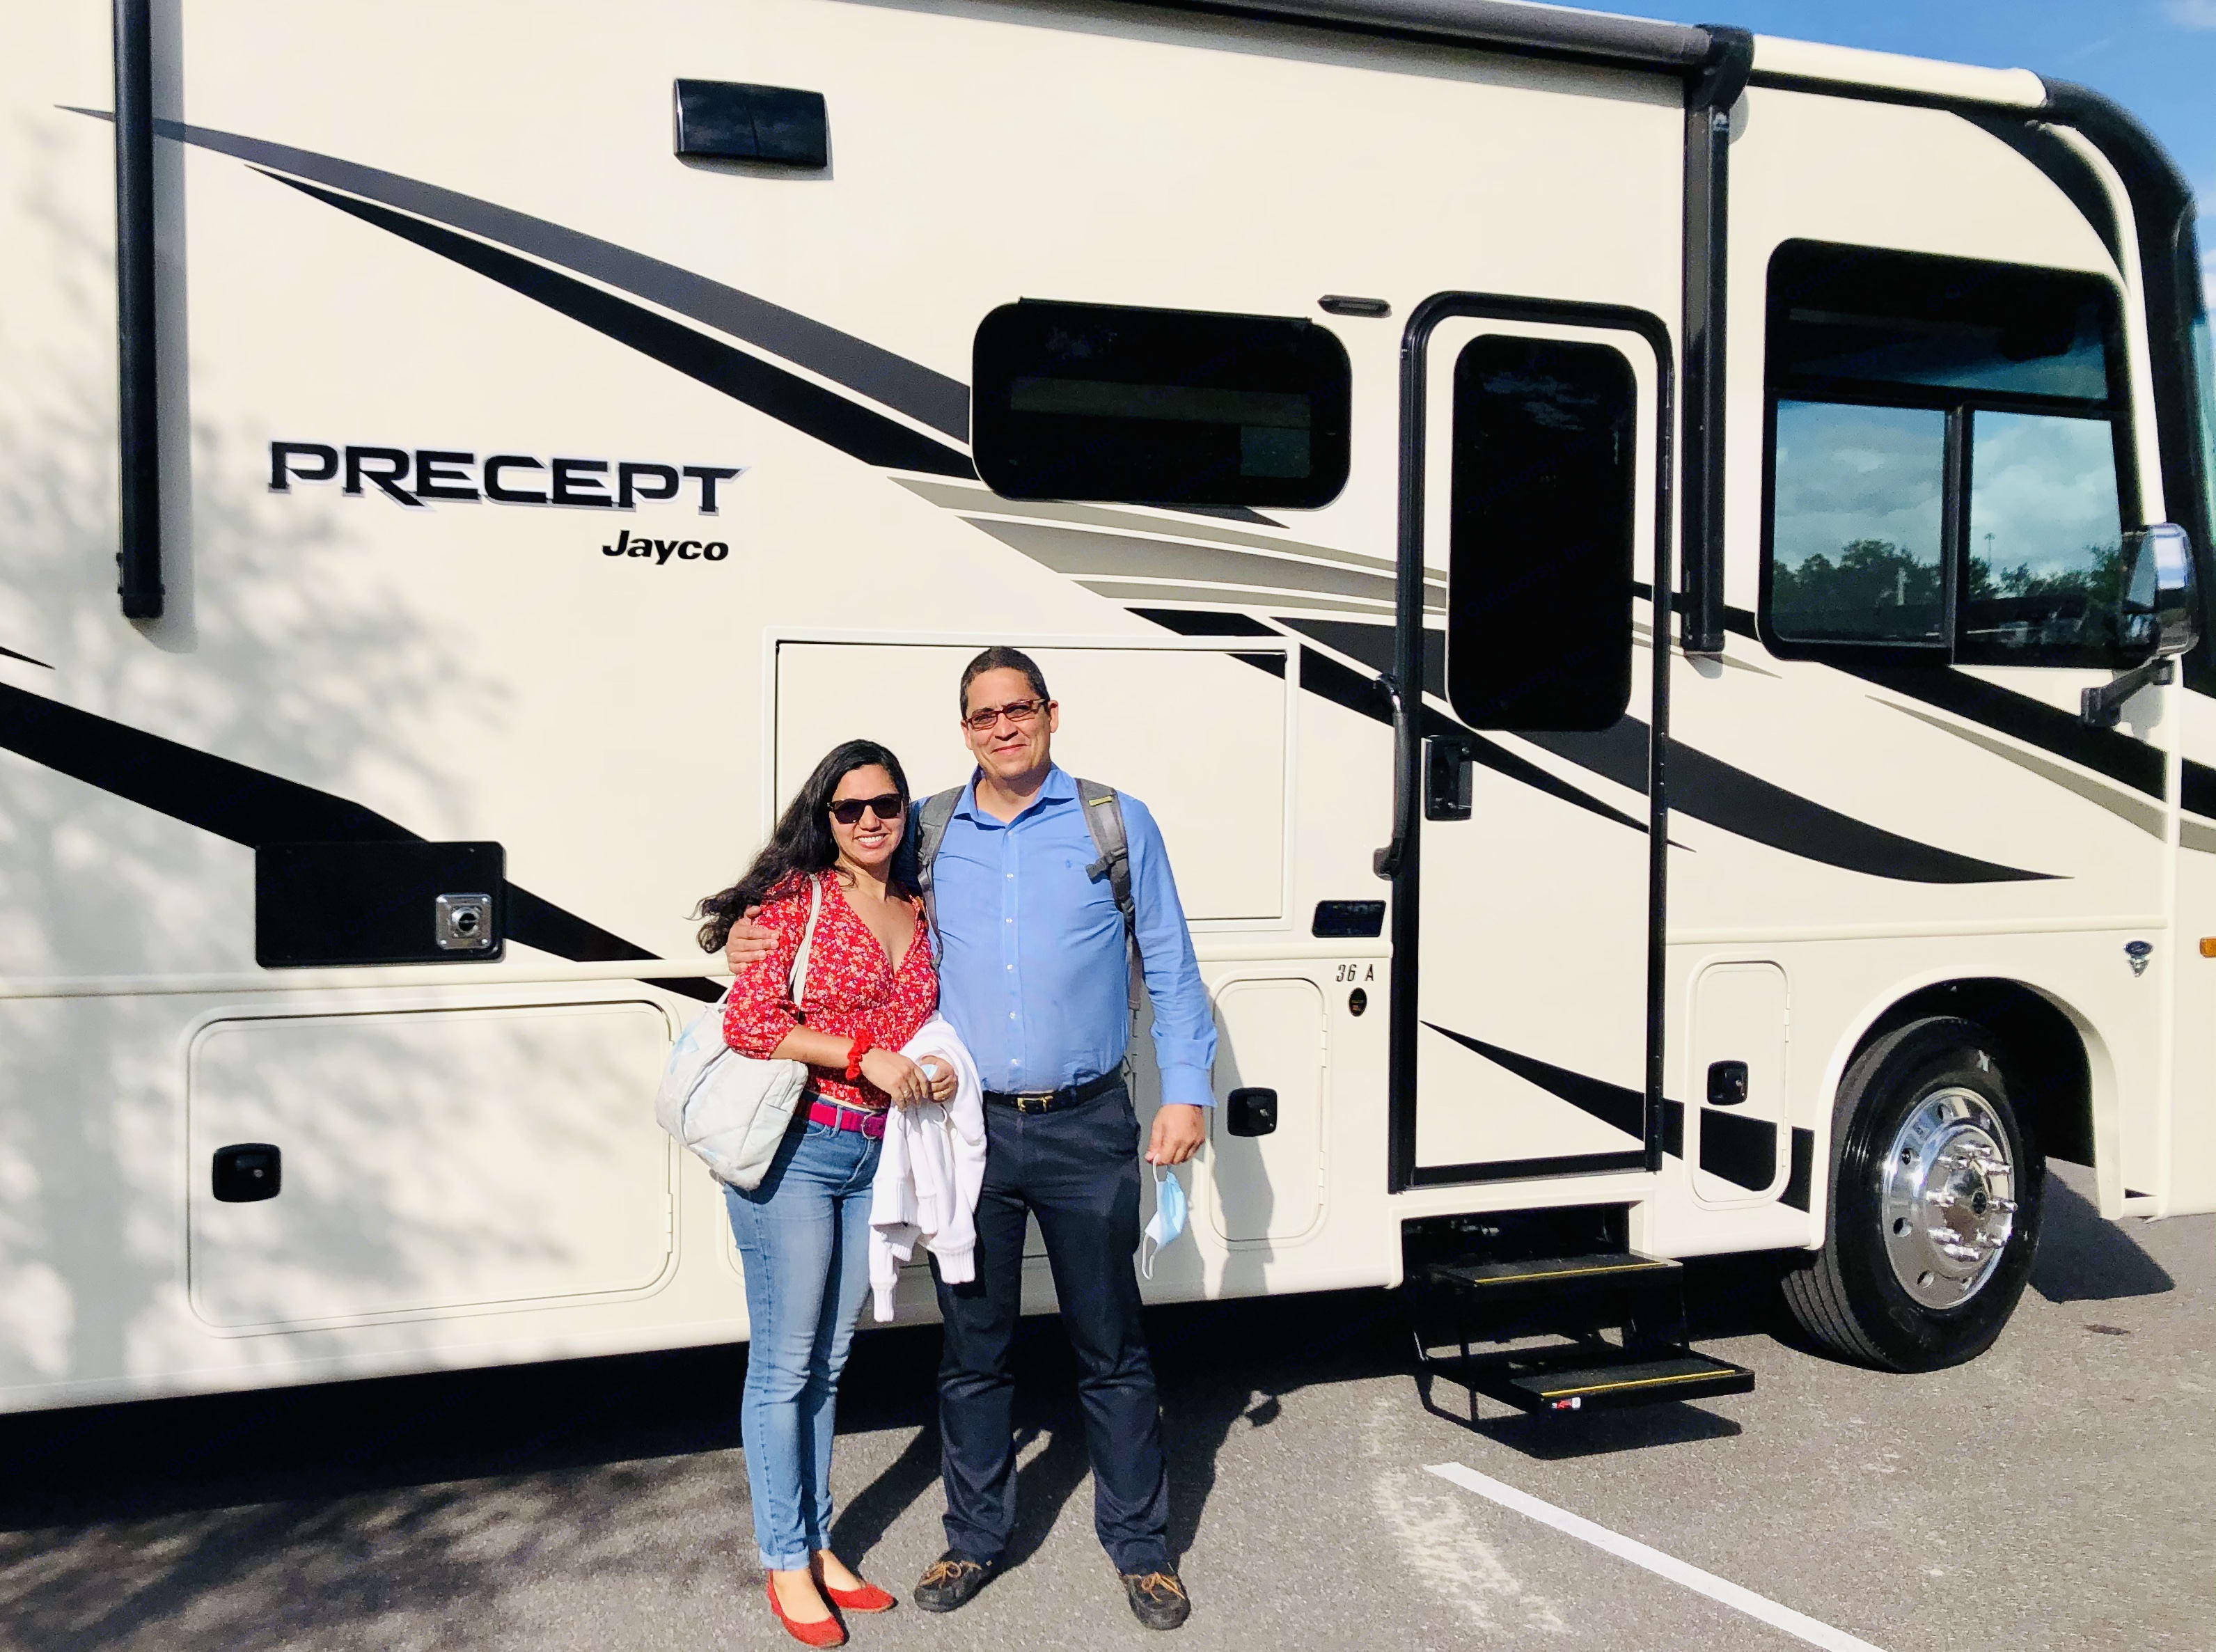 Owners Claudia and Sergio. Jayco Precept 2021